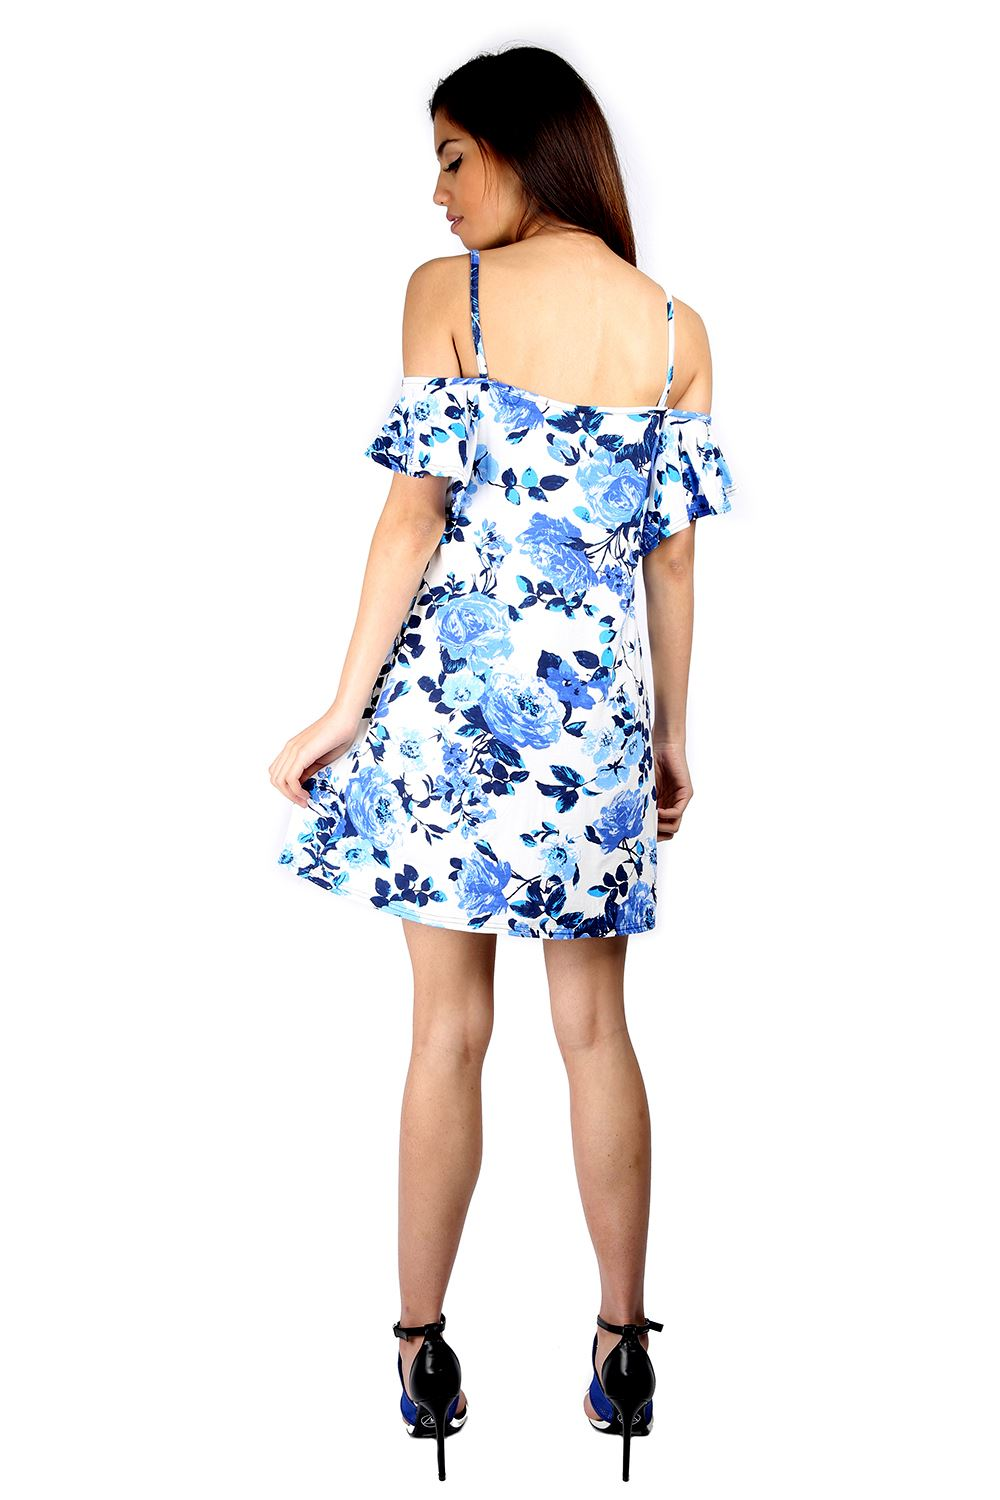 Look classy in Floral Dresses, Women's Floral Dresses, Juniors Floral Dresses and Girls Floral Dresses from Macy's. Macy's Presents: The Edit - A curated mix of fashion and inspiration Check It Out Free Shipping with $75 purchase + Free Store Pickup.